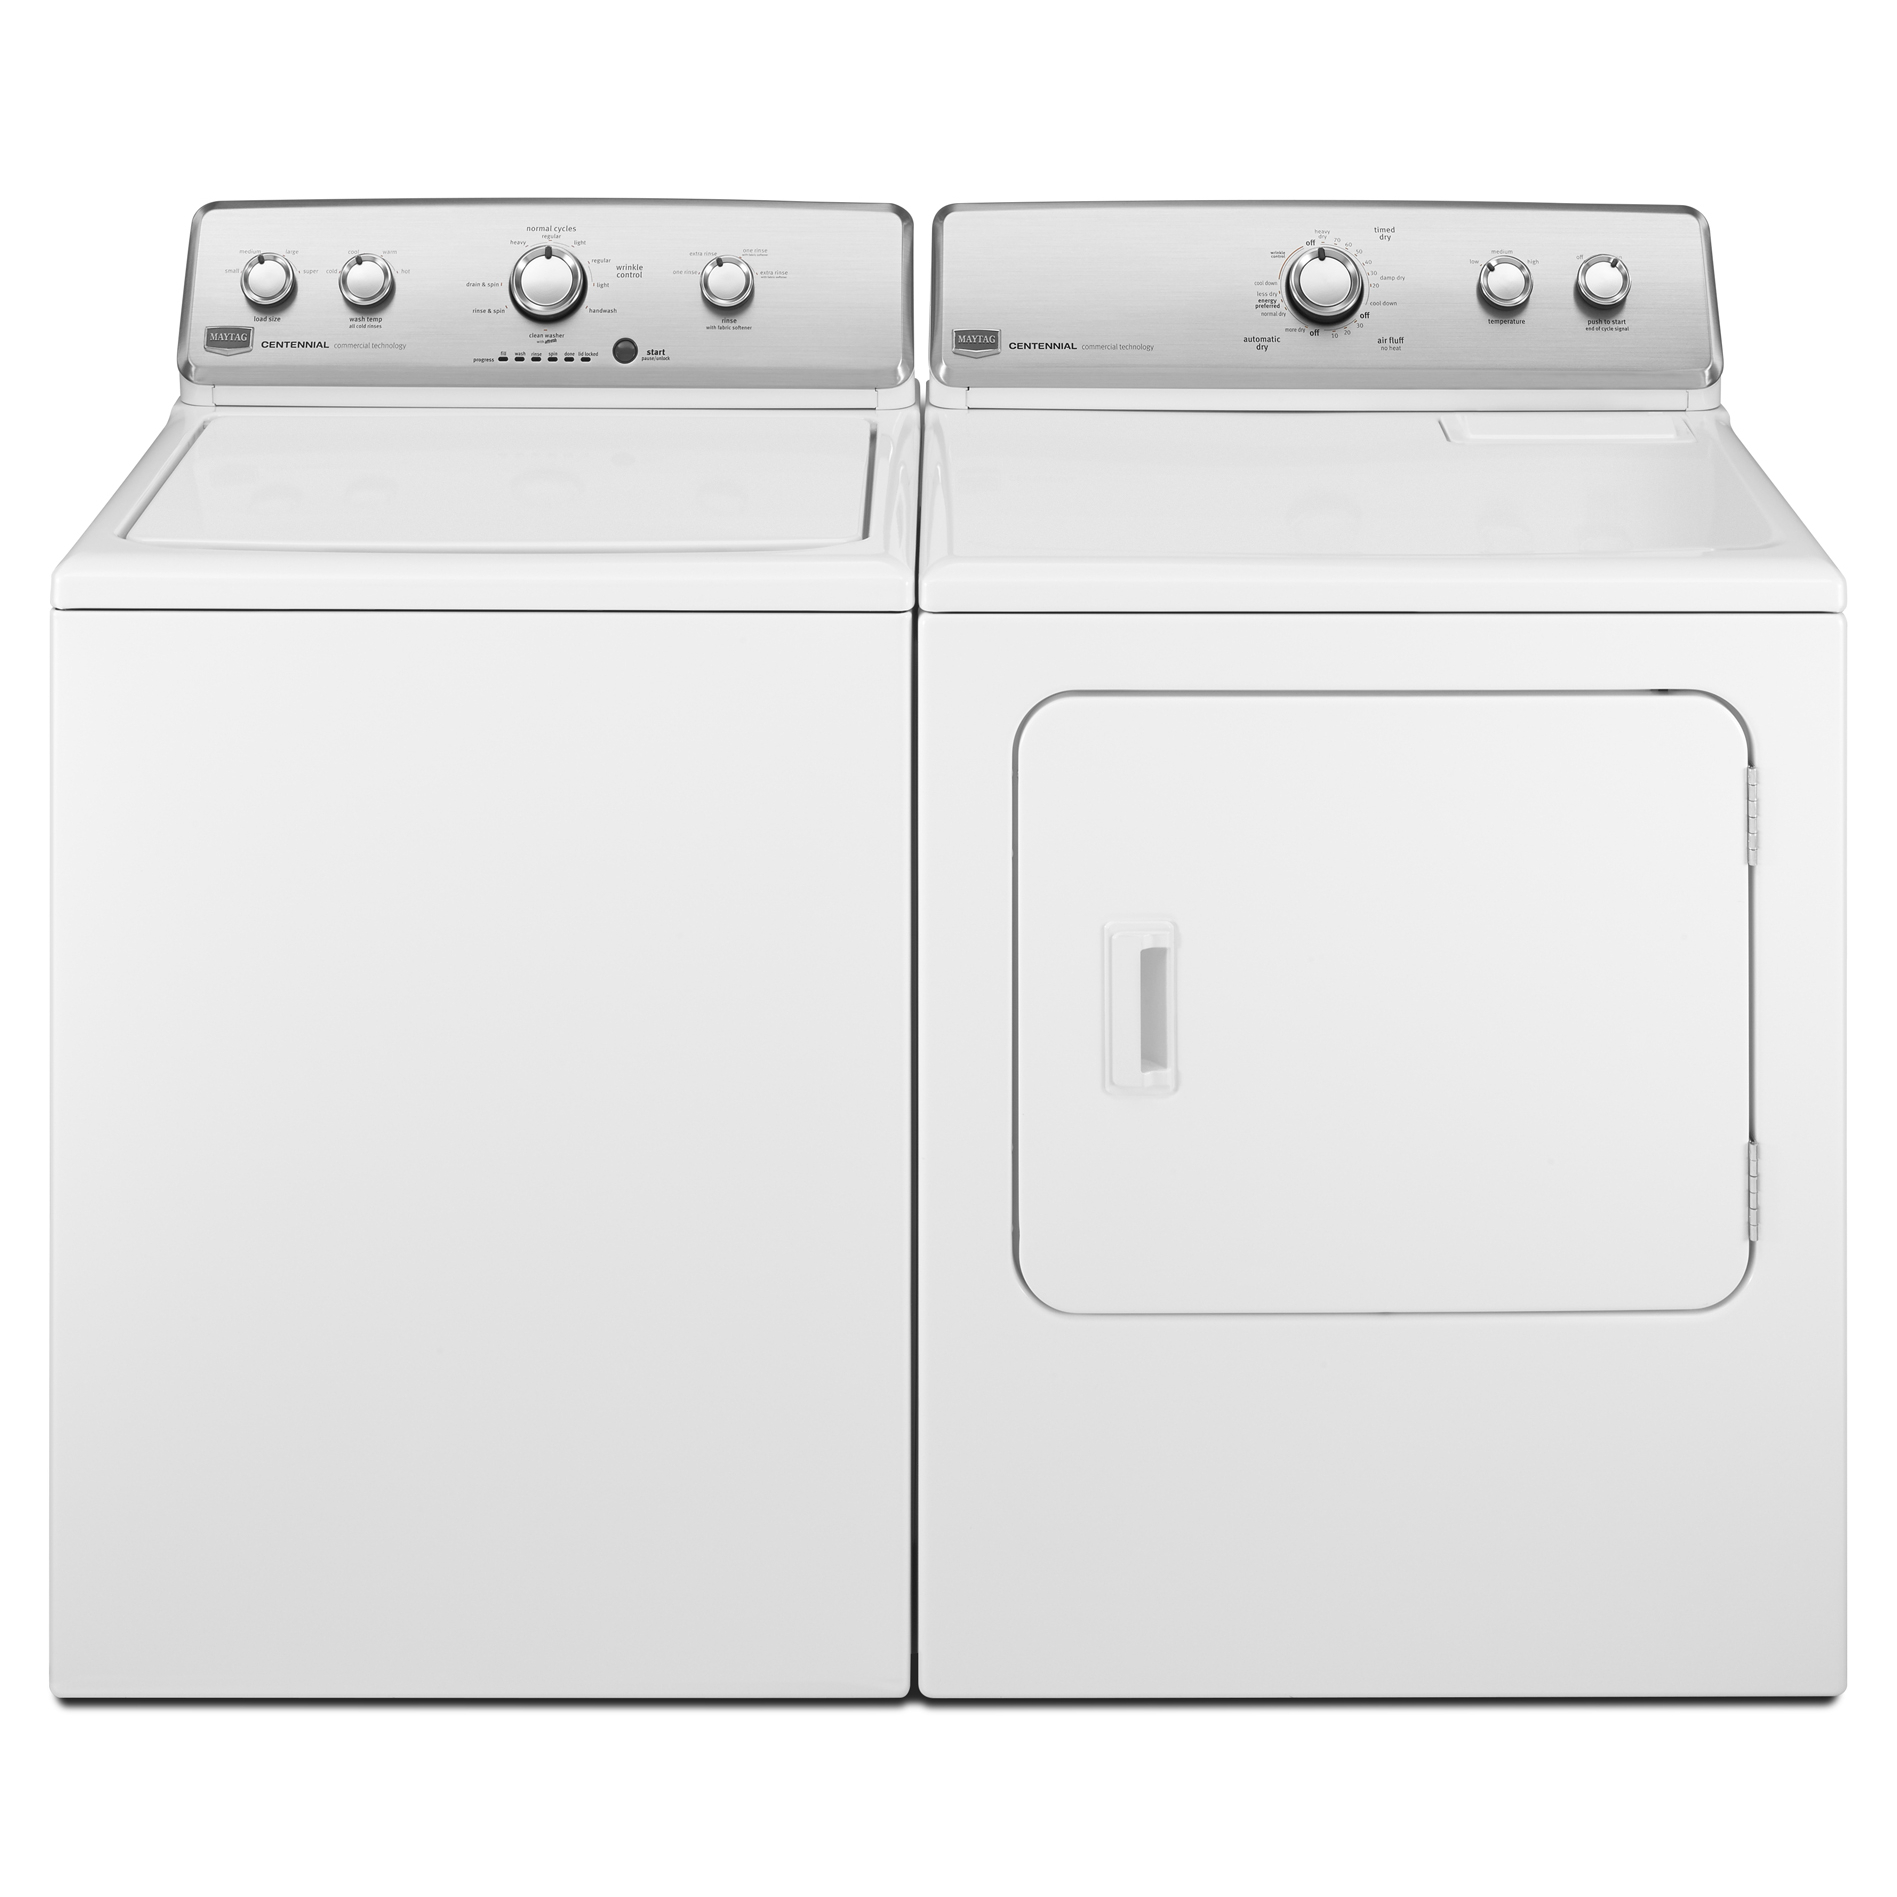 Maytag 3.6 cu. ft. Centennial® Top-Load Washer w/ Handwash Cycle - White